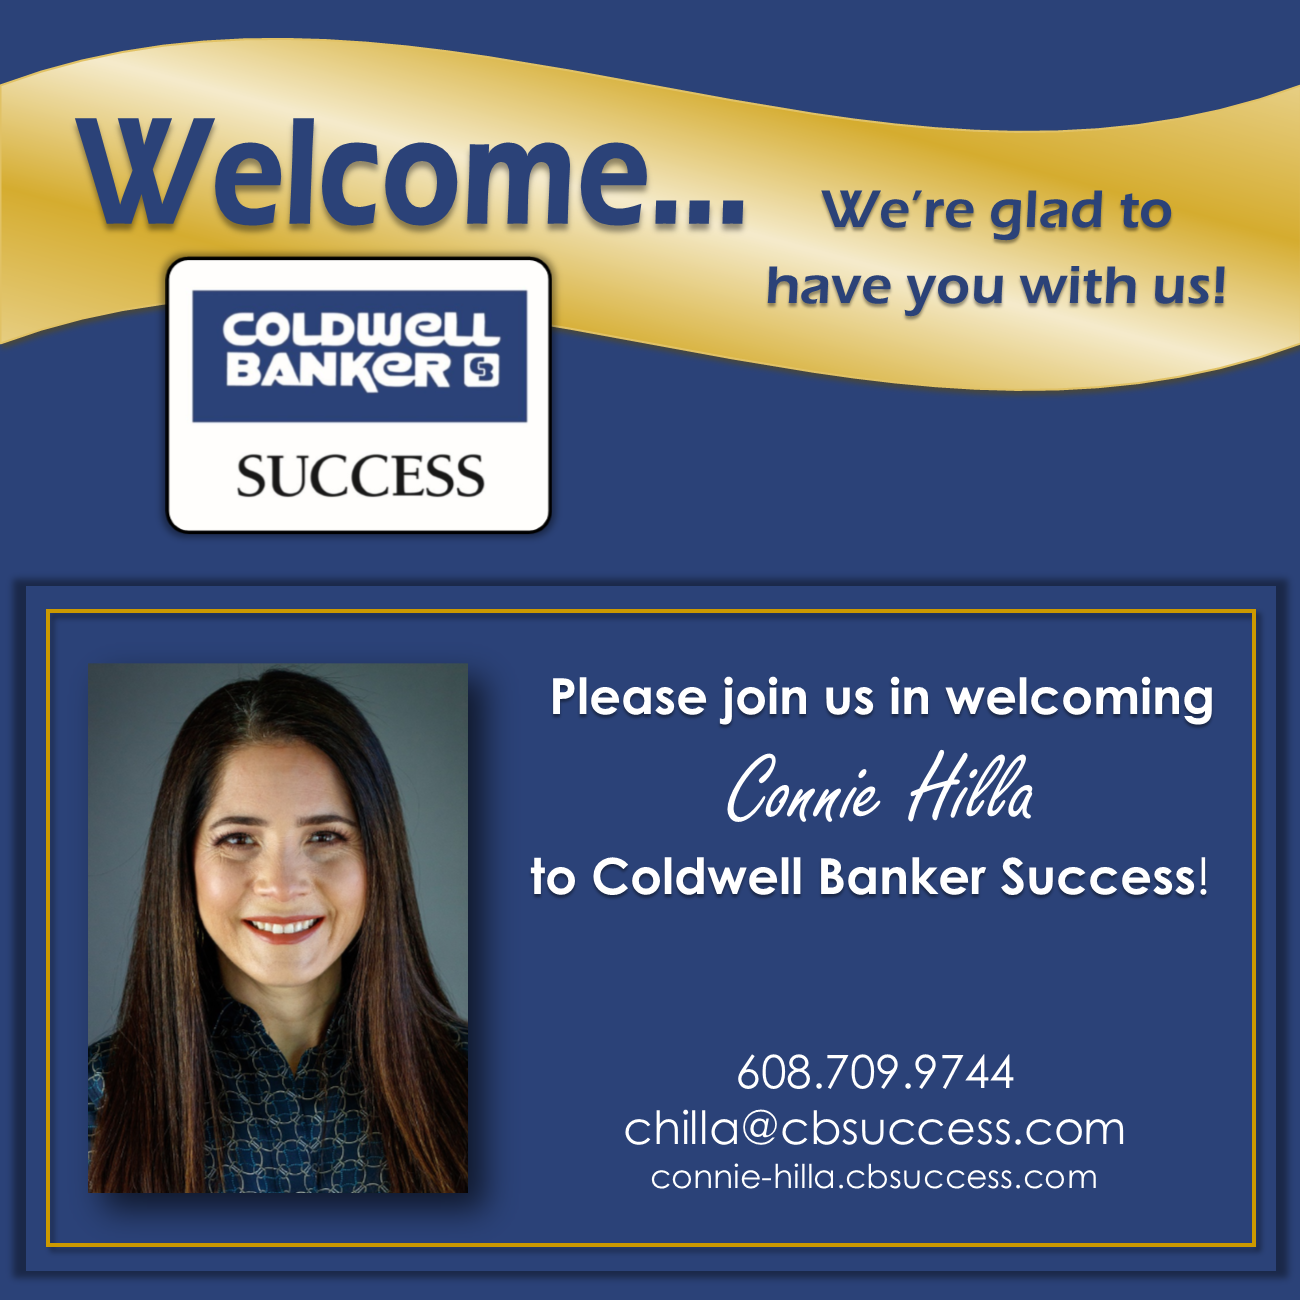 Welcome Connie Hilla!